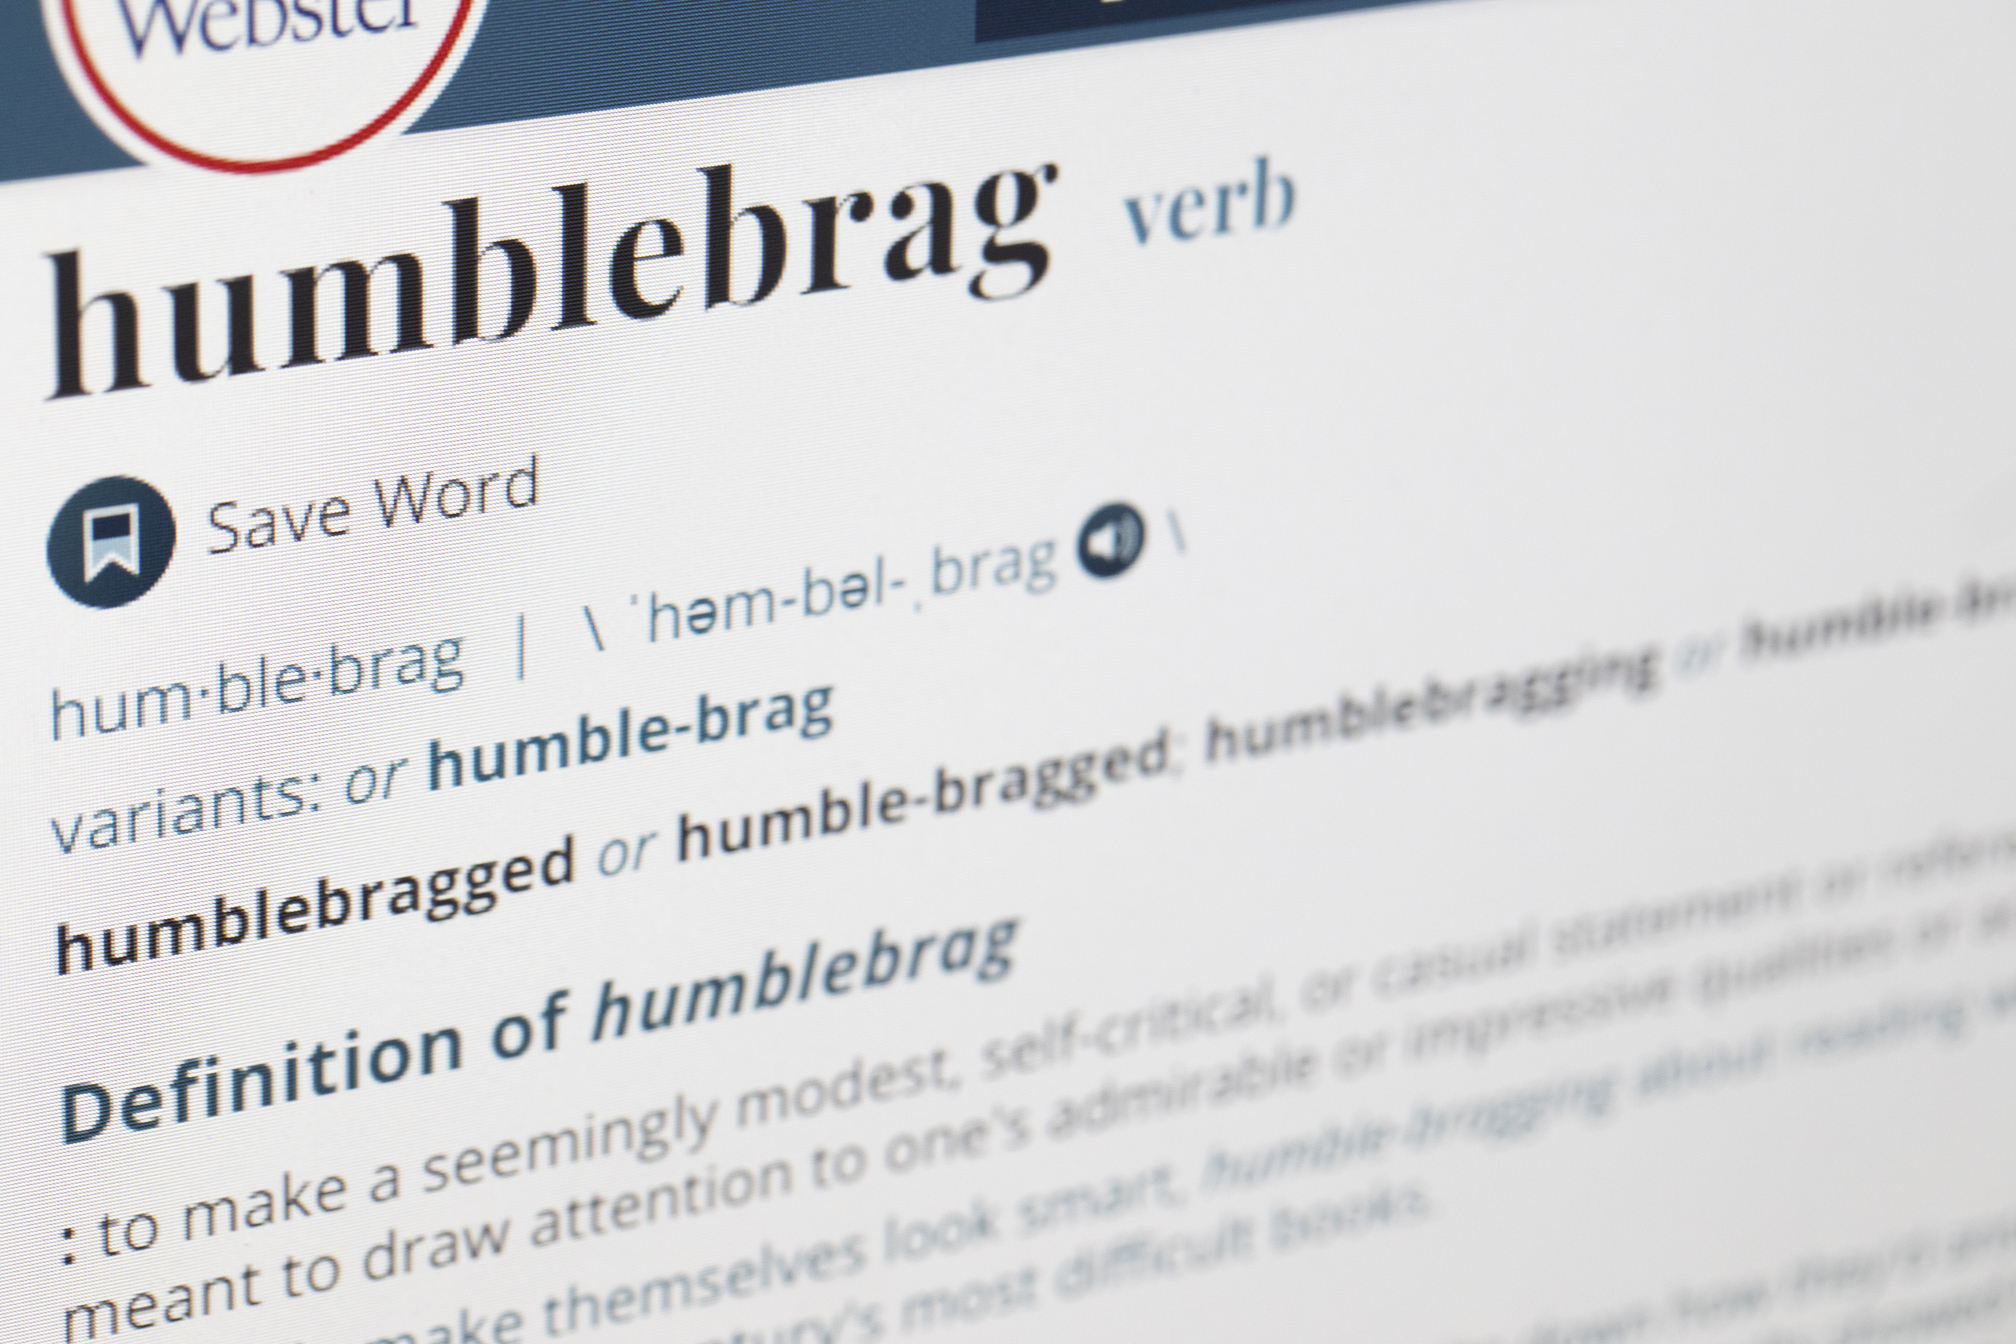 """The Merriam-Webster dictionary titans say the term """"humblebrag"""" has been around since 2002. The Associated Press says it should quietly disappear from use in the coming year."""